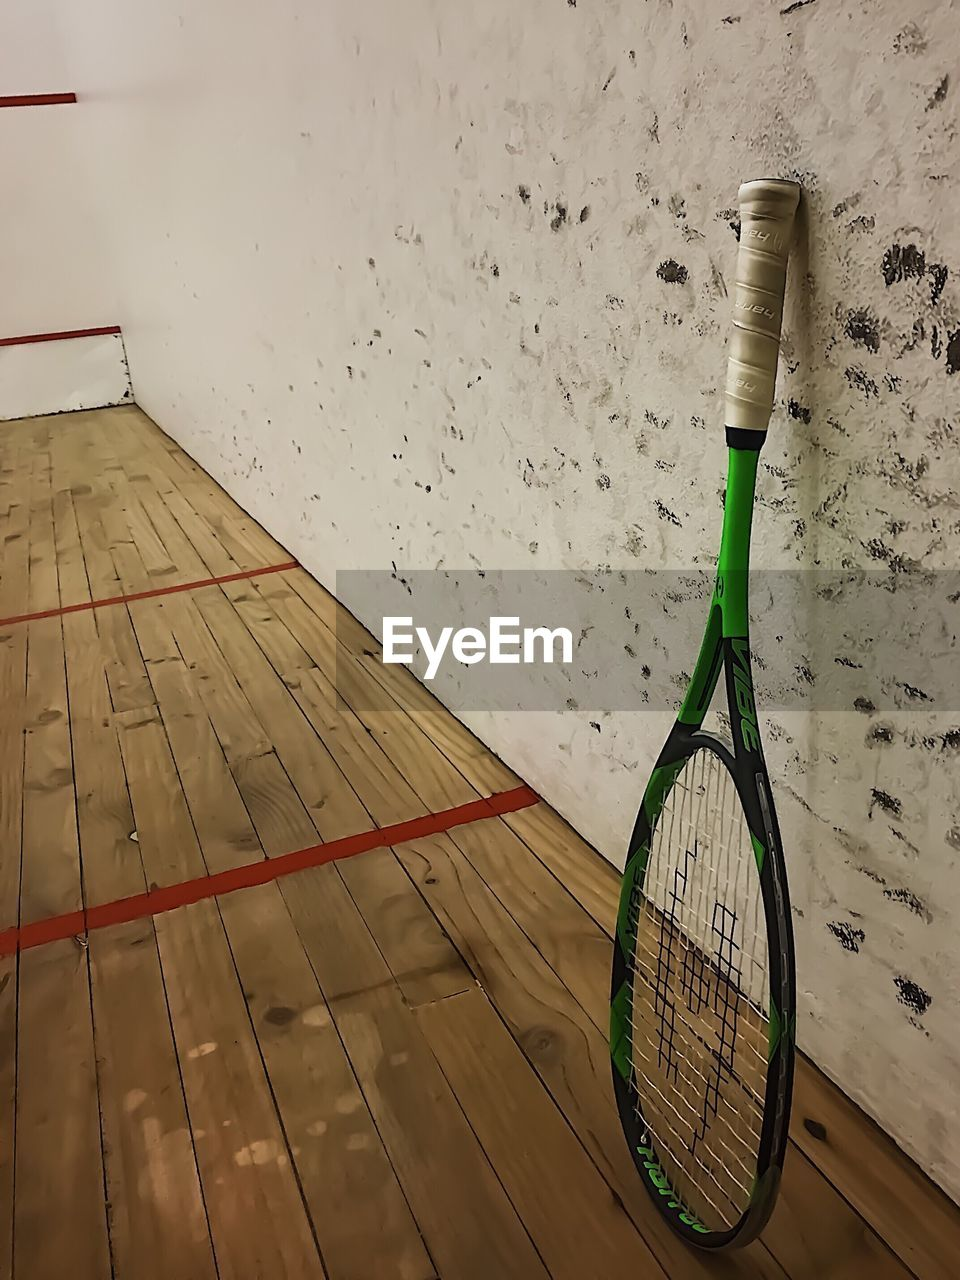 indoors, no people, day, close-up, tennis